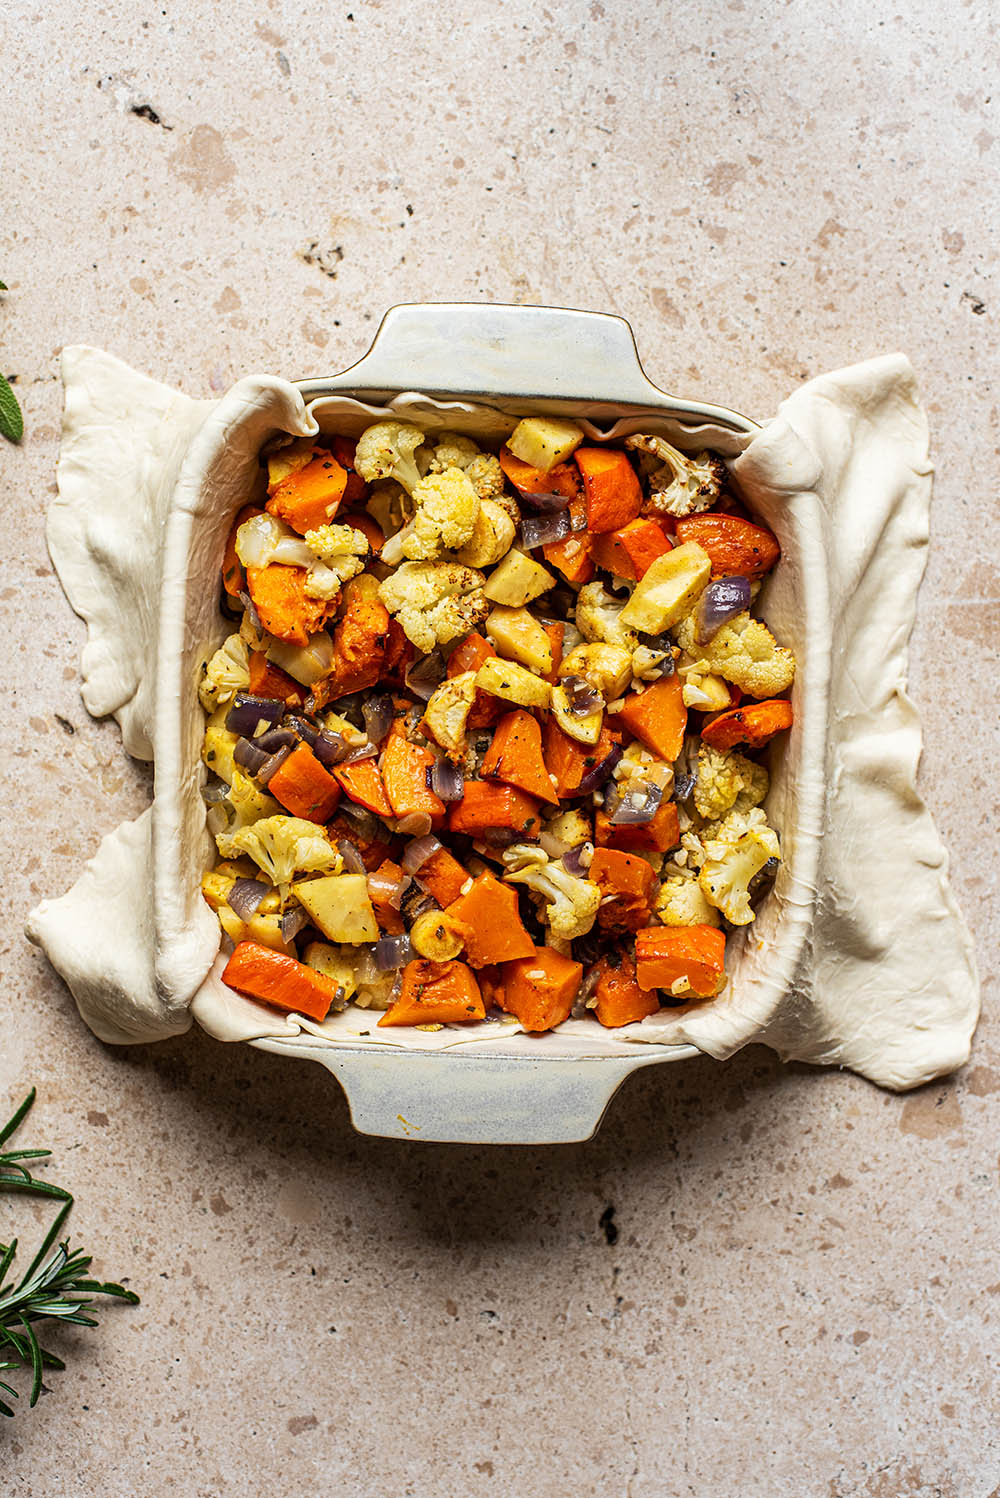 Vegetables places into a baking dish with pastry overflowing the sides.